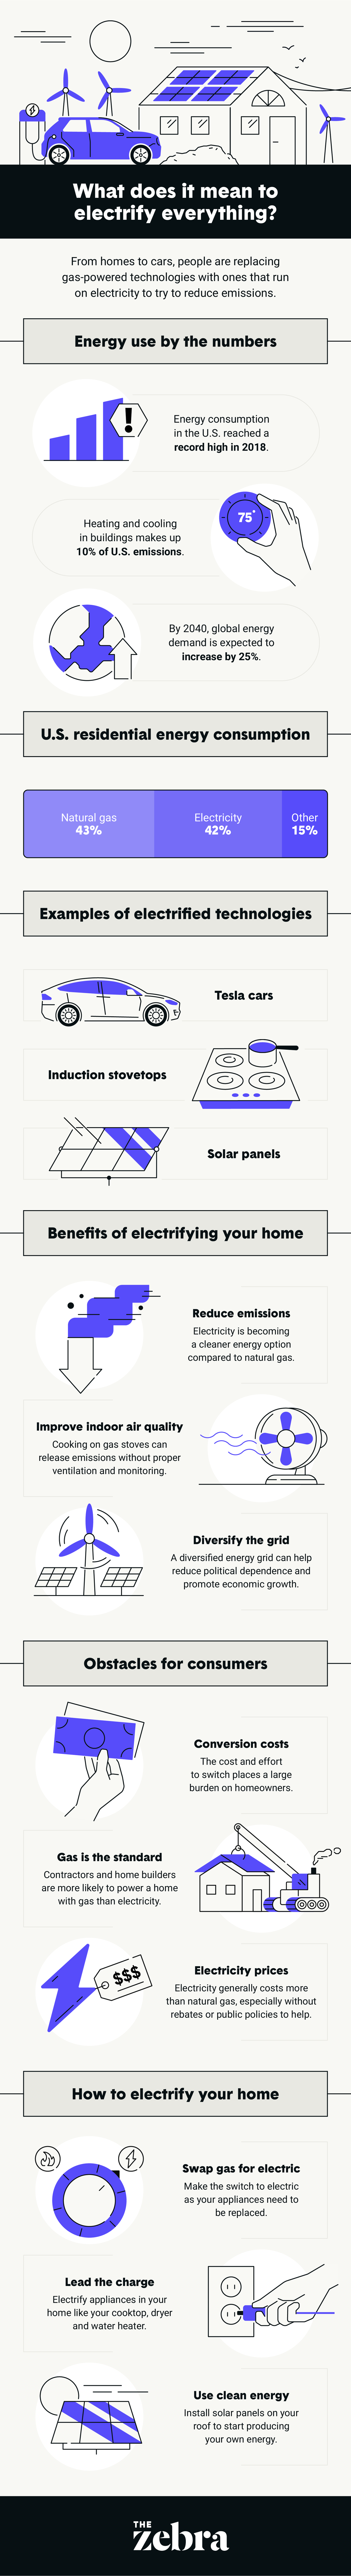 How Electrifying your Home can Help the Environment [Infographic] | ecogreenlove